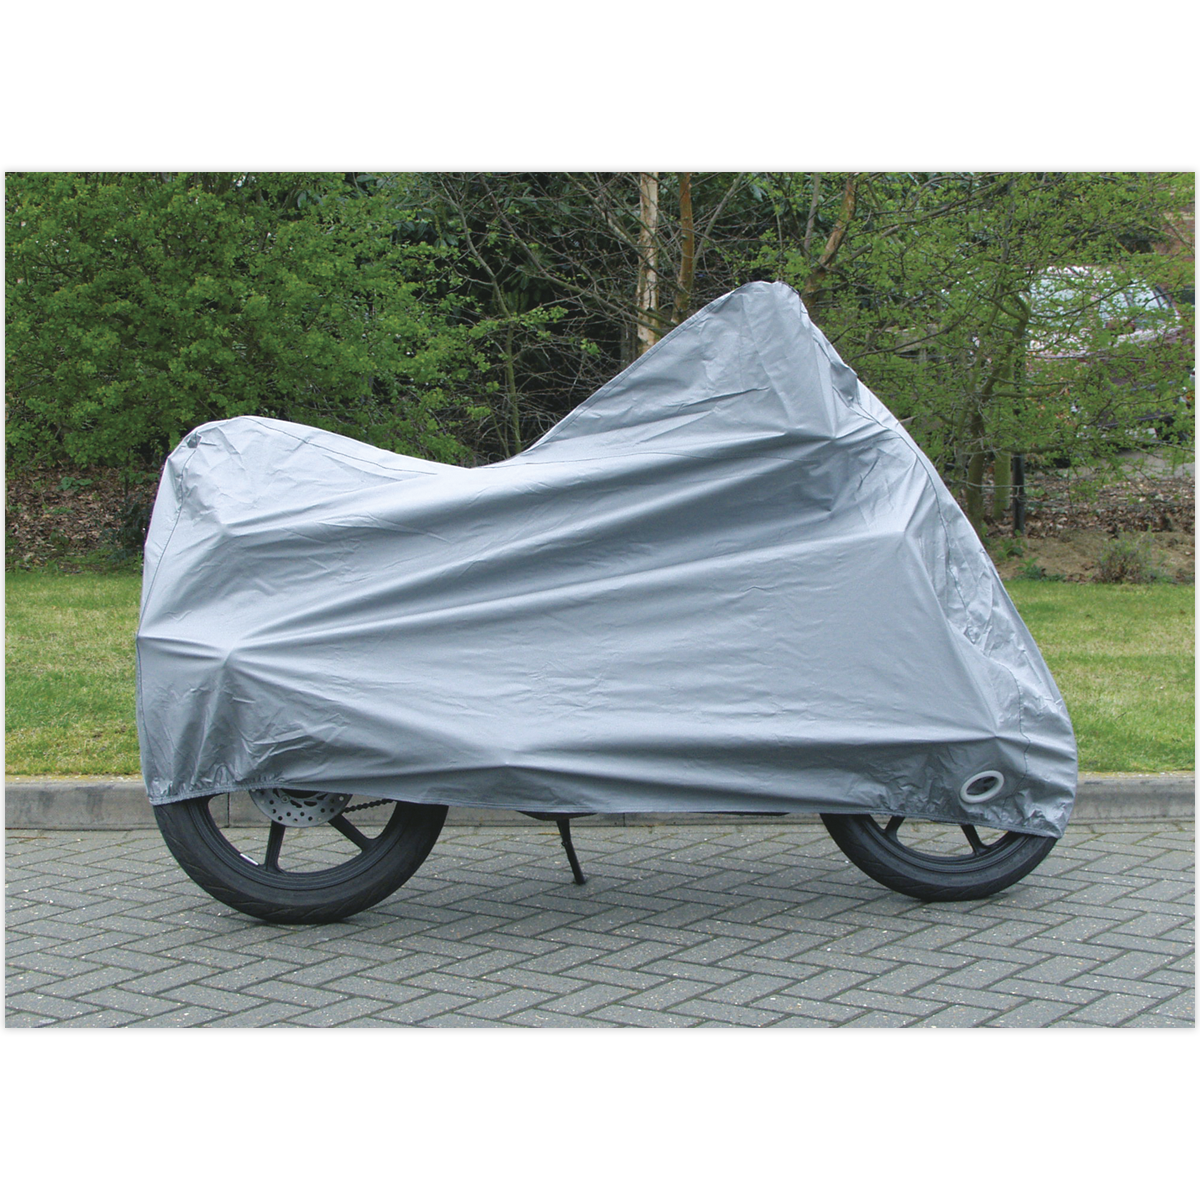 Motorcycle Cover Medium 2320 x 1000 x 1350mm